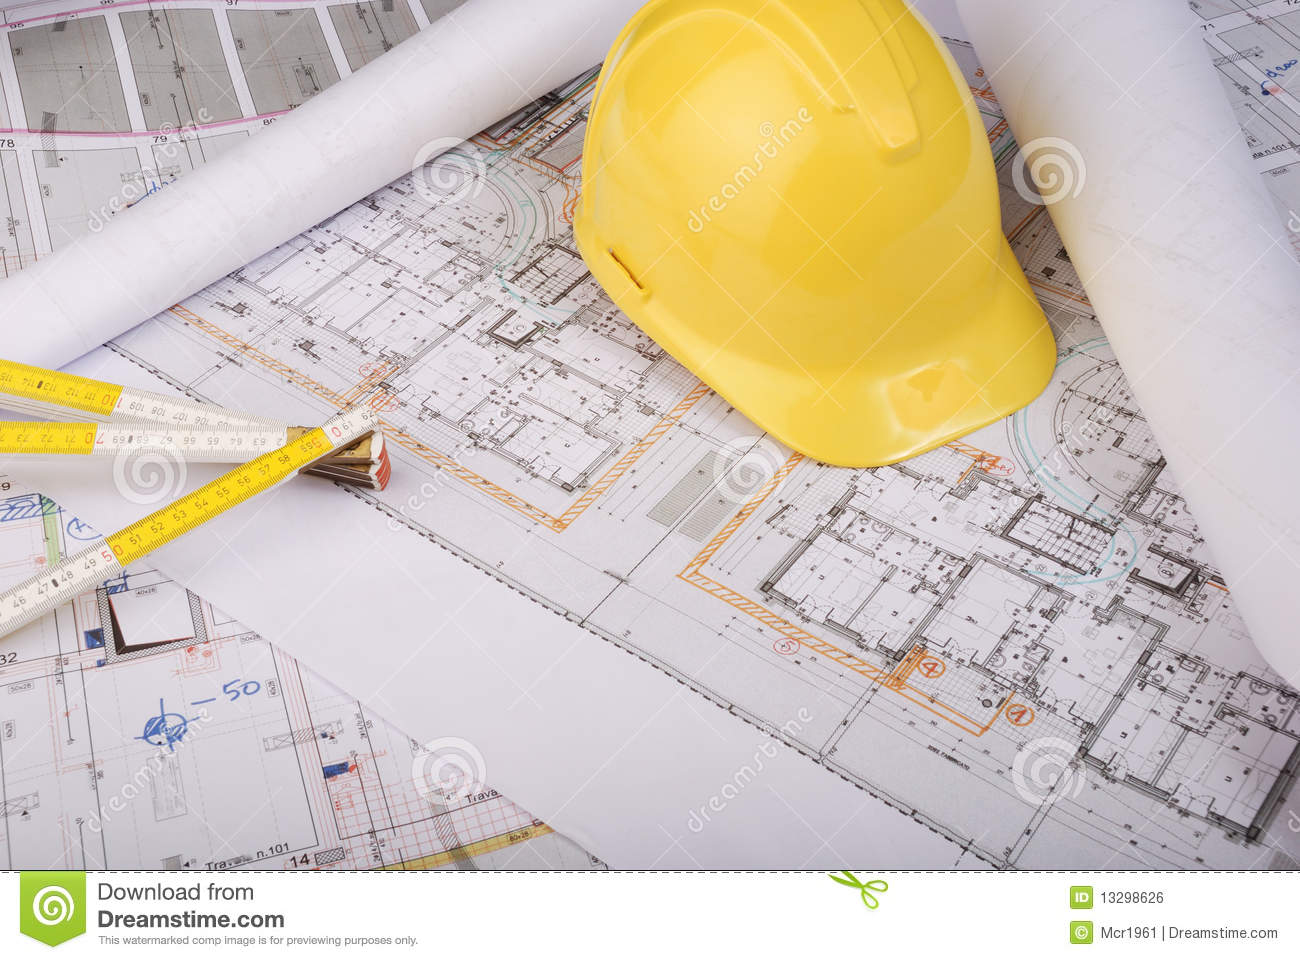 Plans Rools And Helmet 3 Royalty Free Stock Image Image